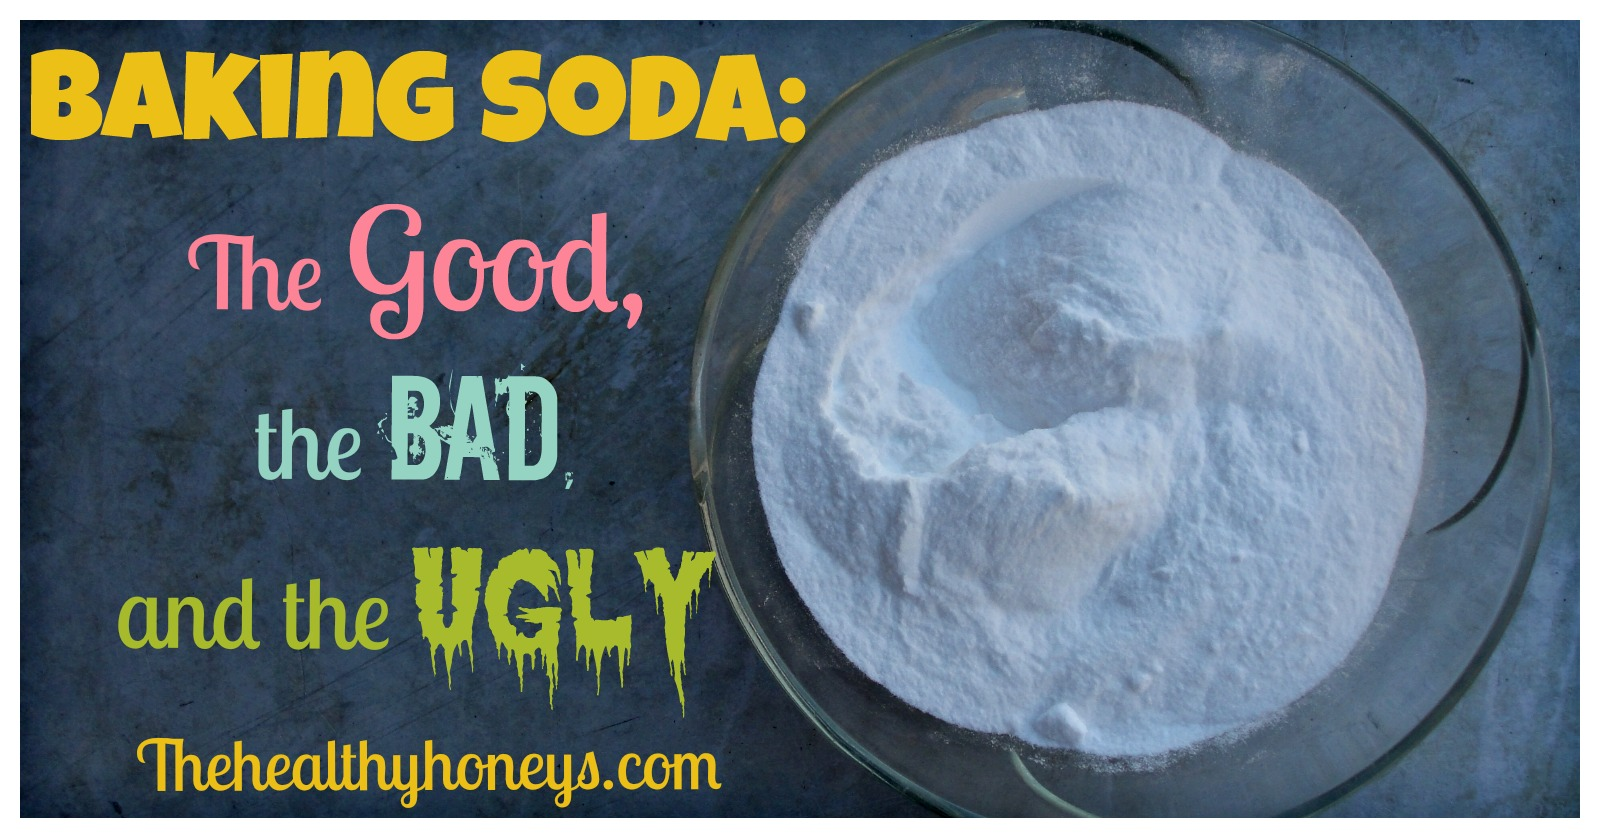 Baking Soda: The Good, the Bad, and the Ugly - The Healthy Honeys